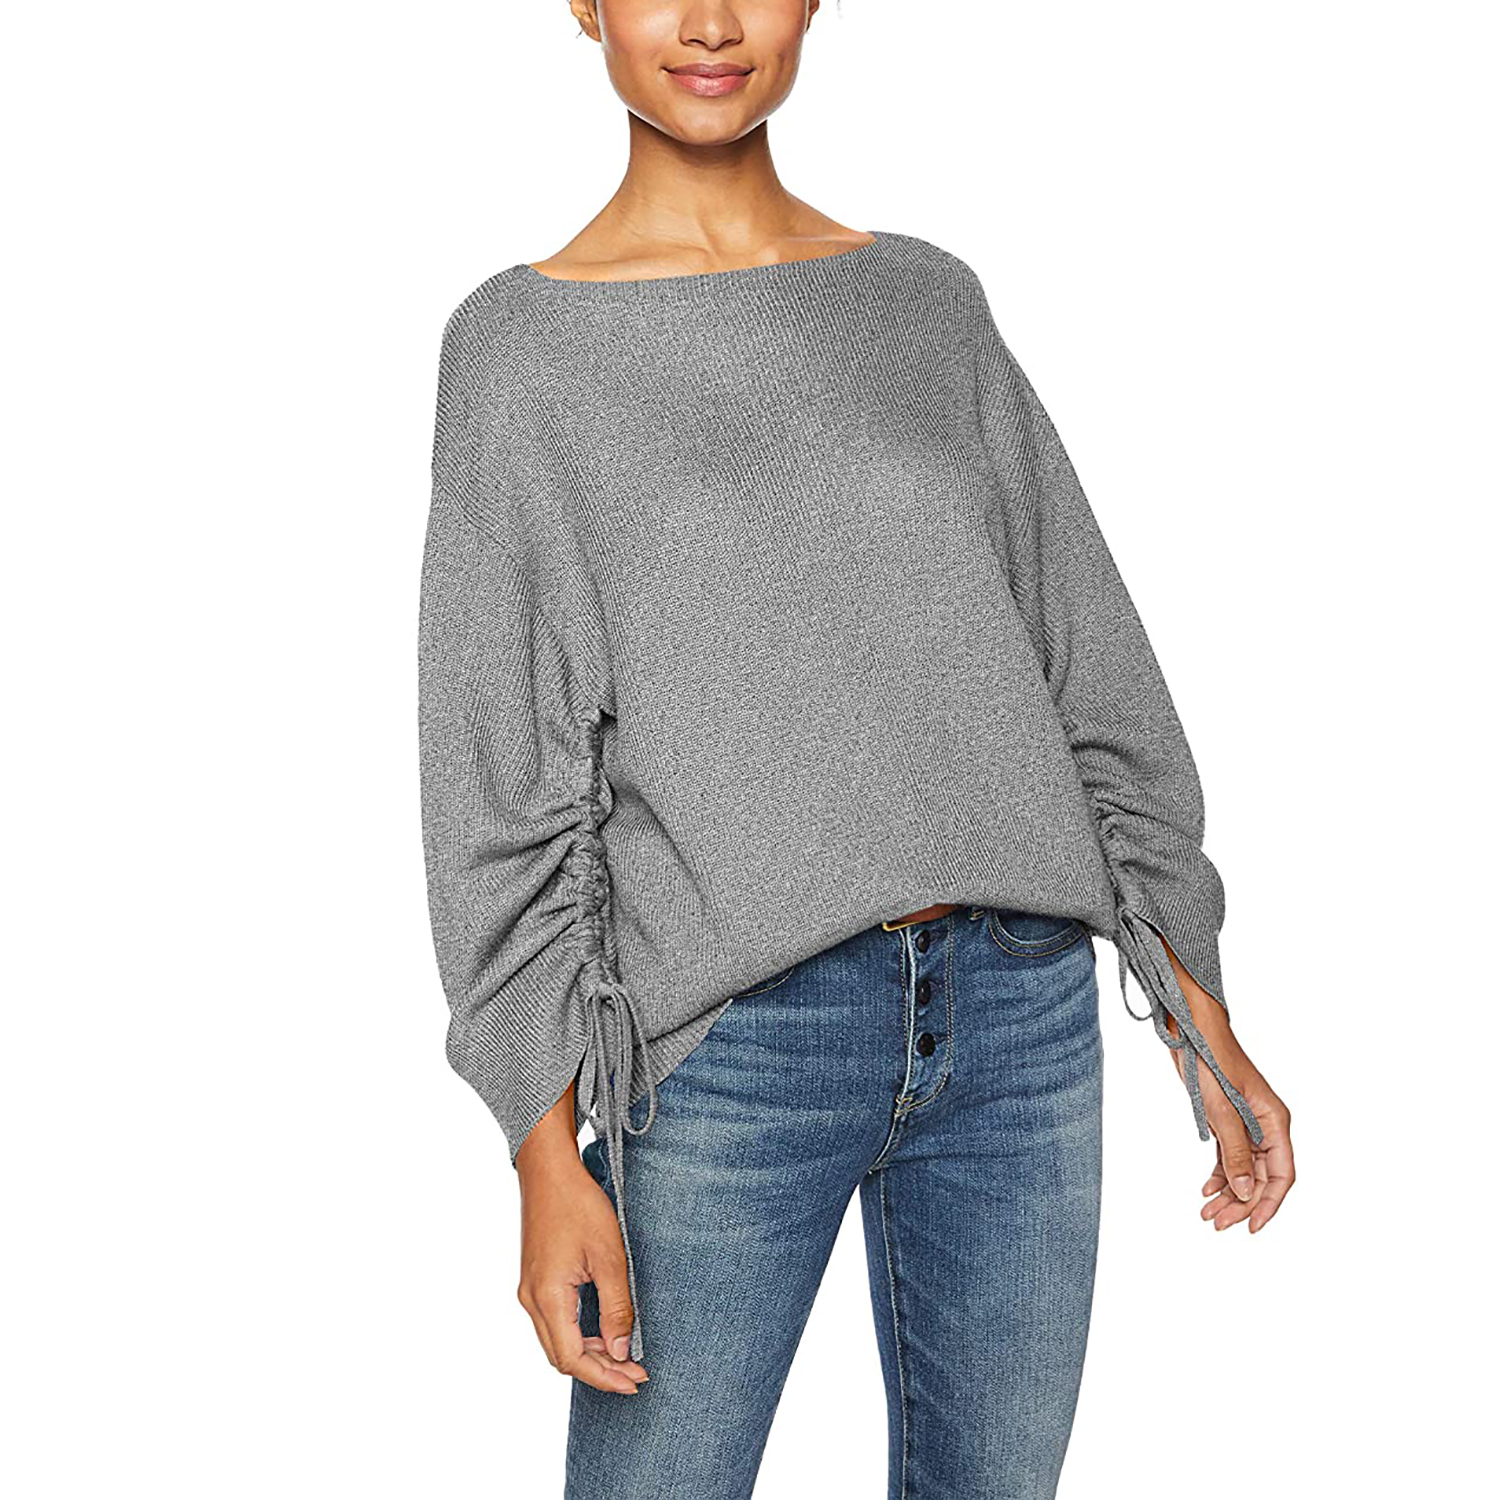 omen's Ruched Sleeve Sweater amazon cable stitch sweaters deals